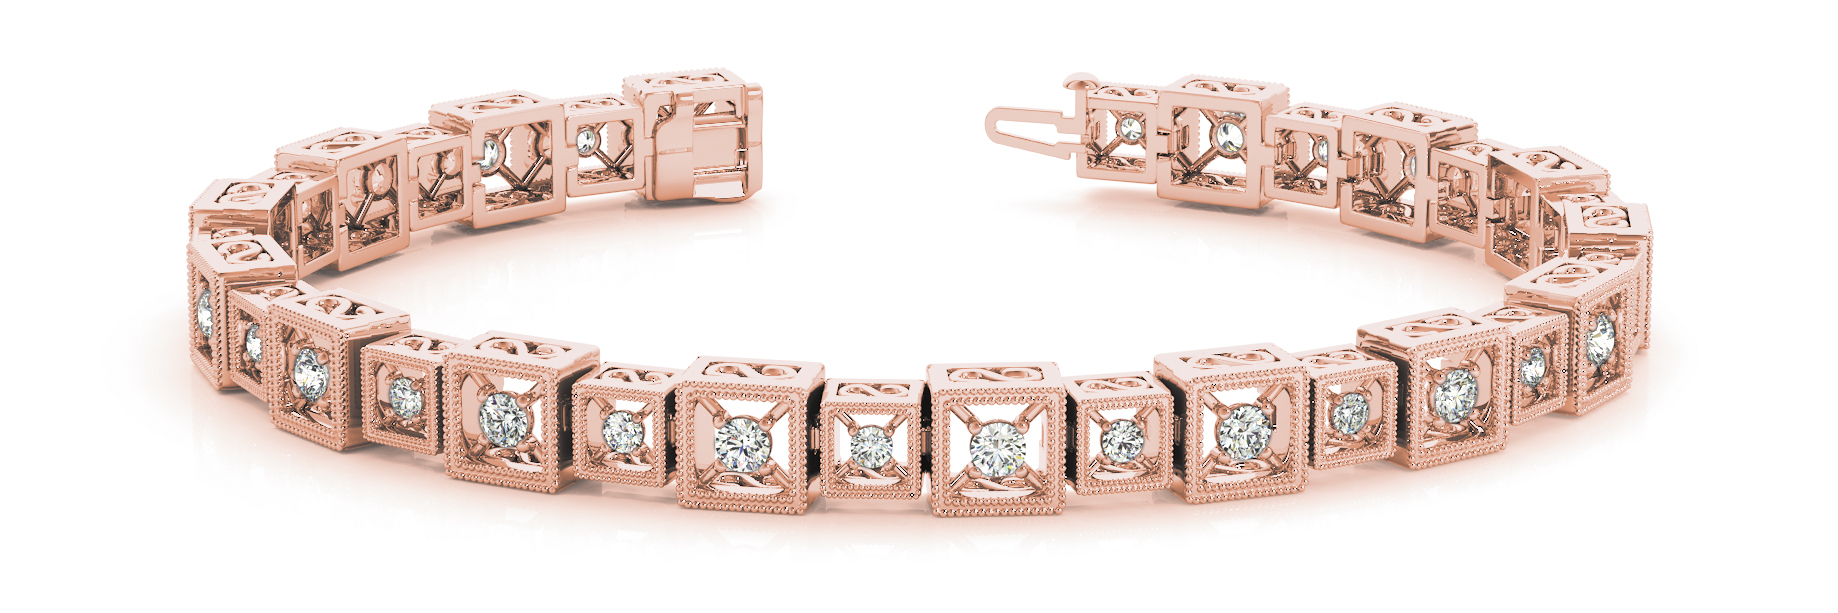 1.92 Carat Round Diamond Square Filigree Rose Gold Bracelet